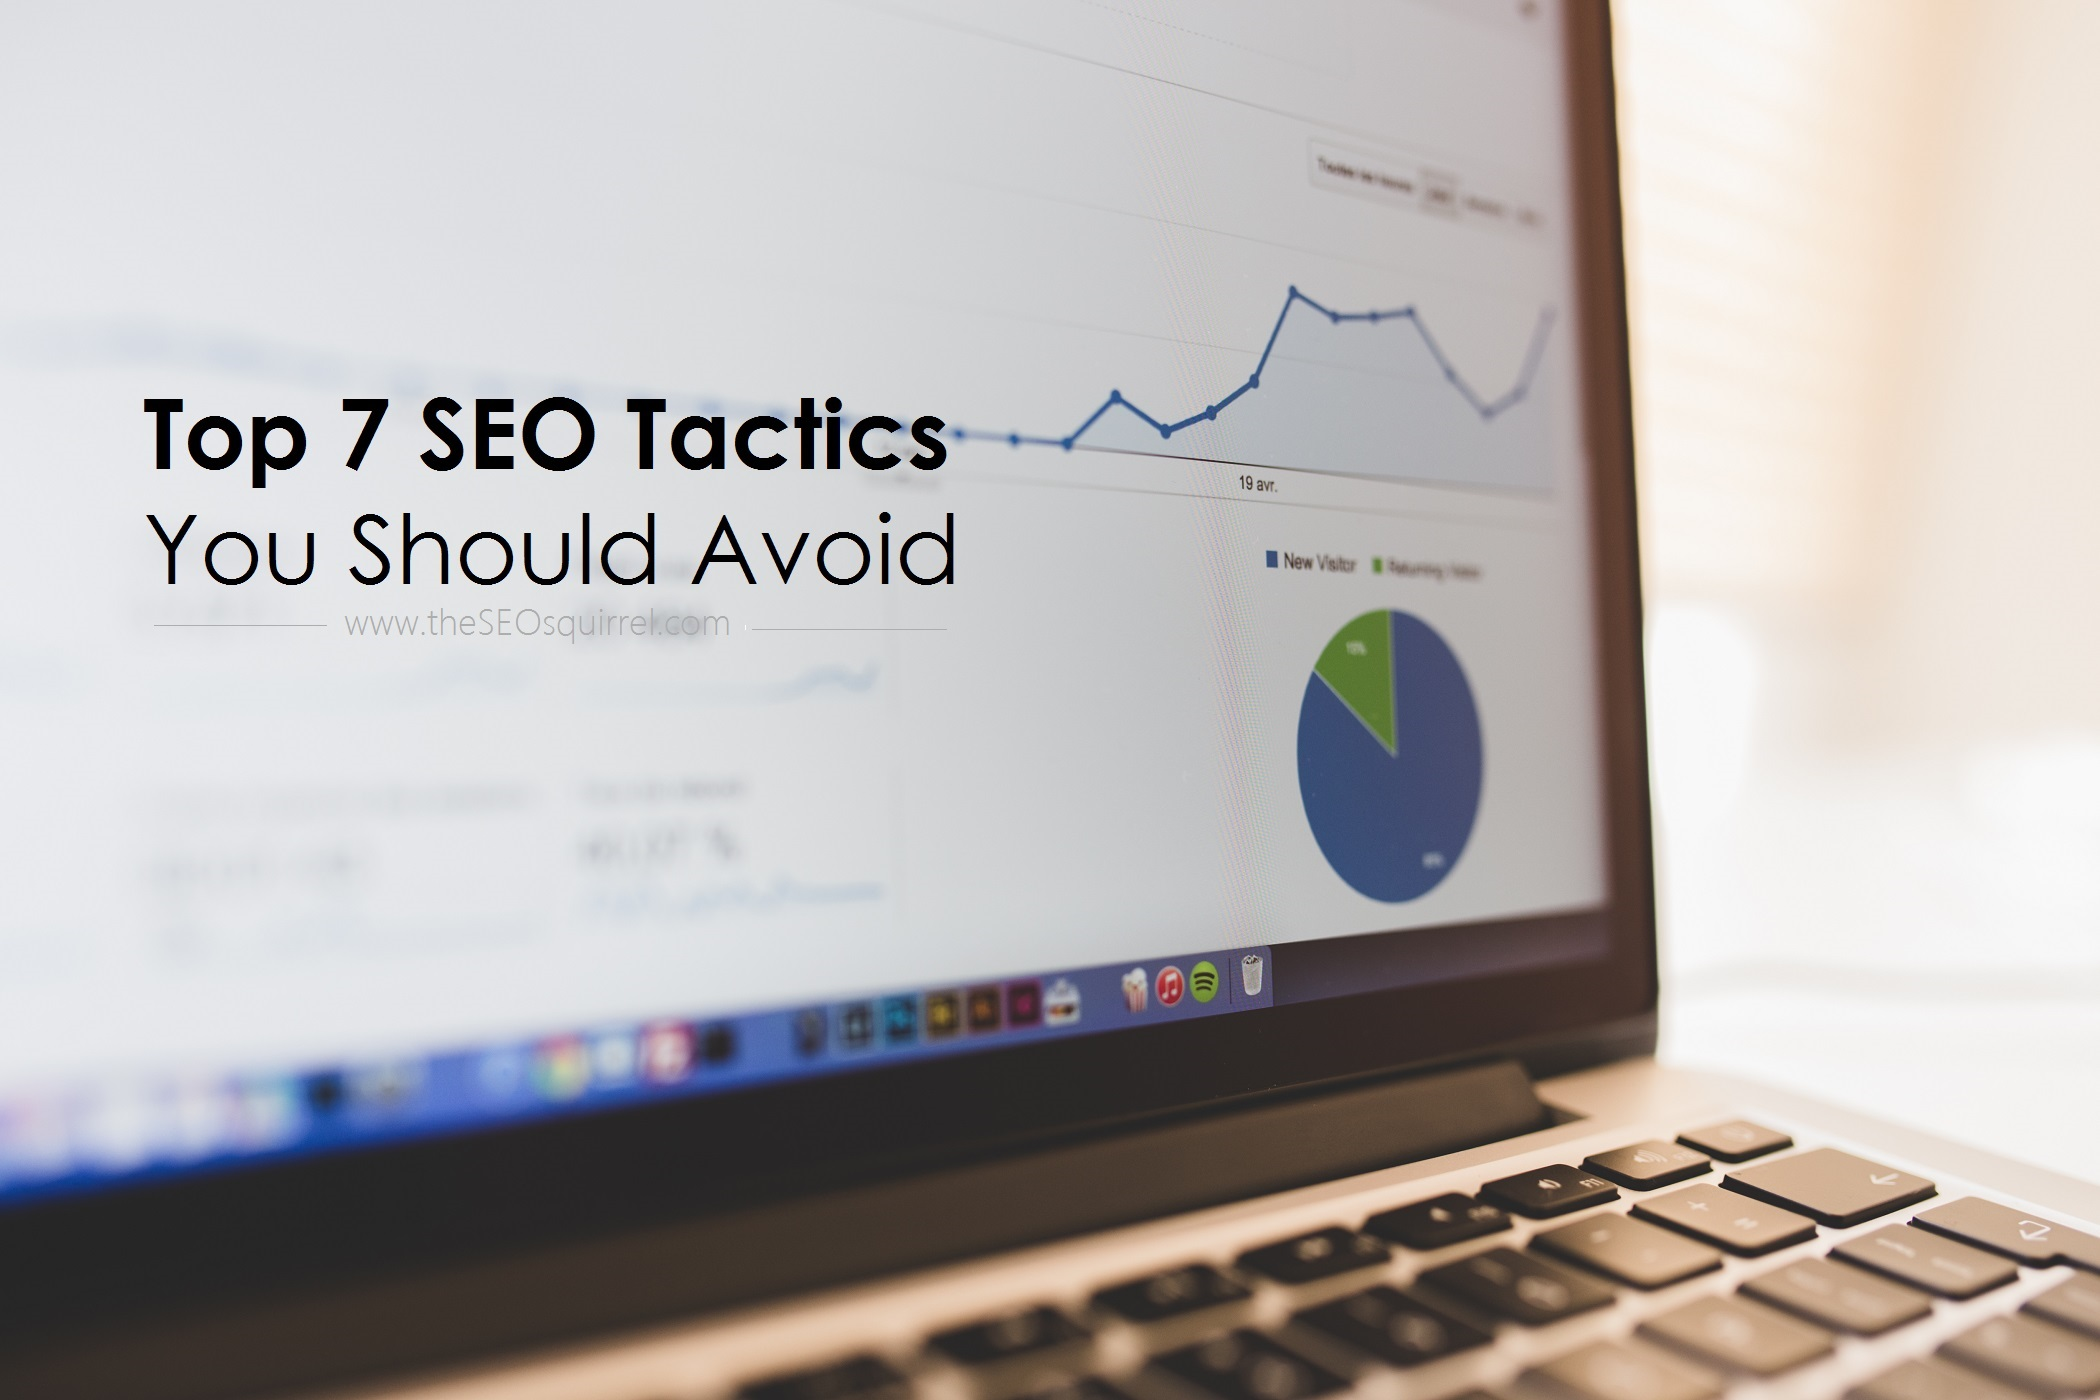 Top 7 SEO Tactics You Should Avoid